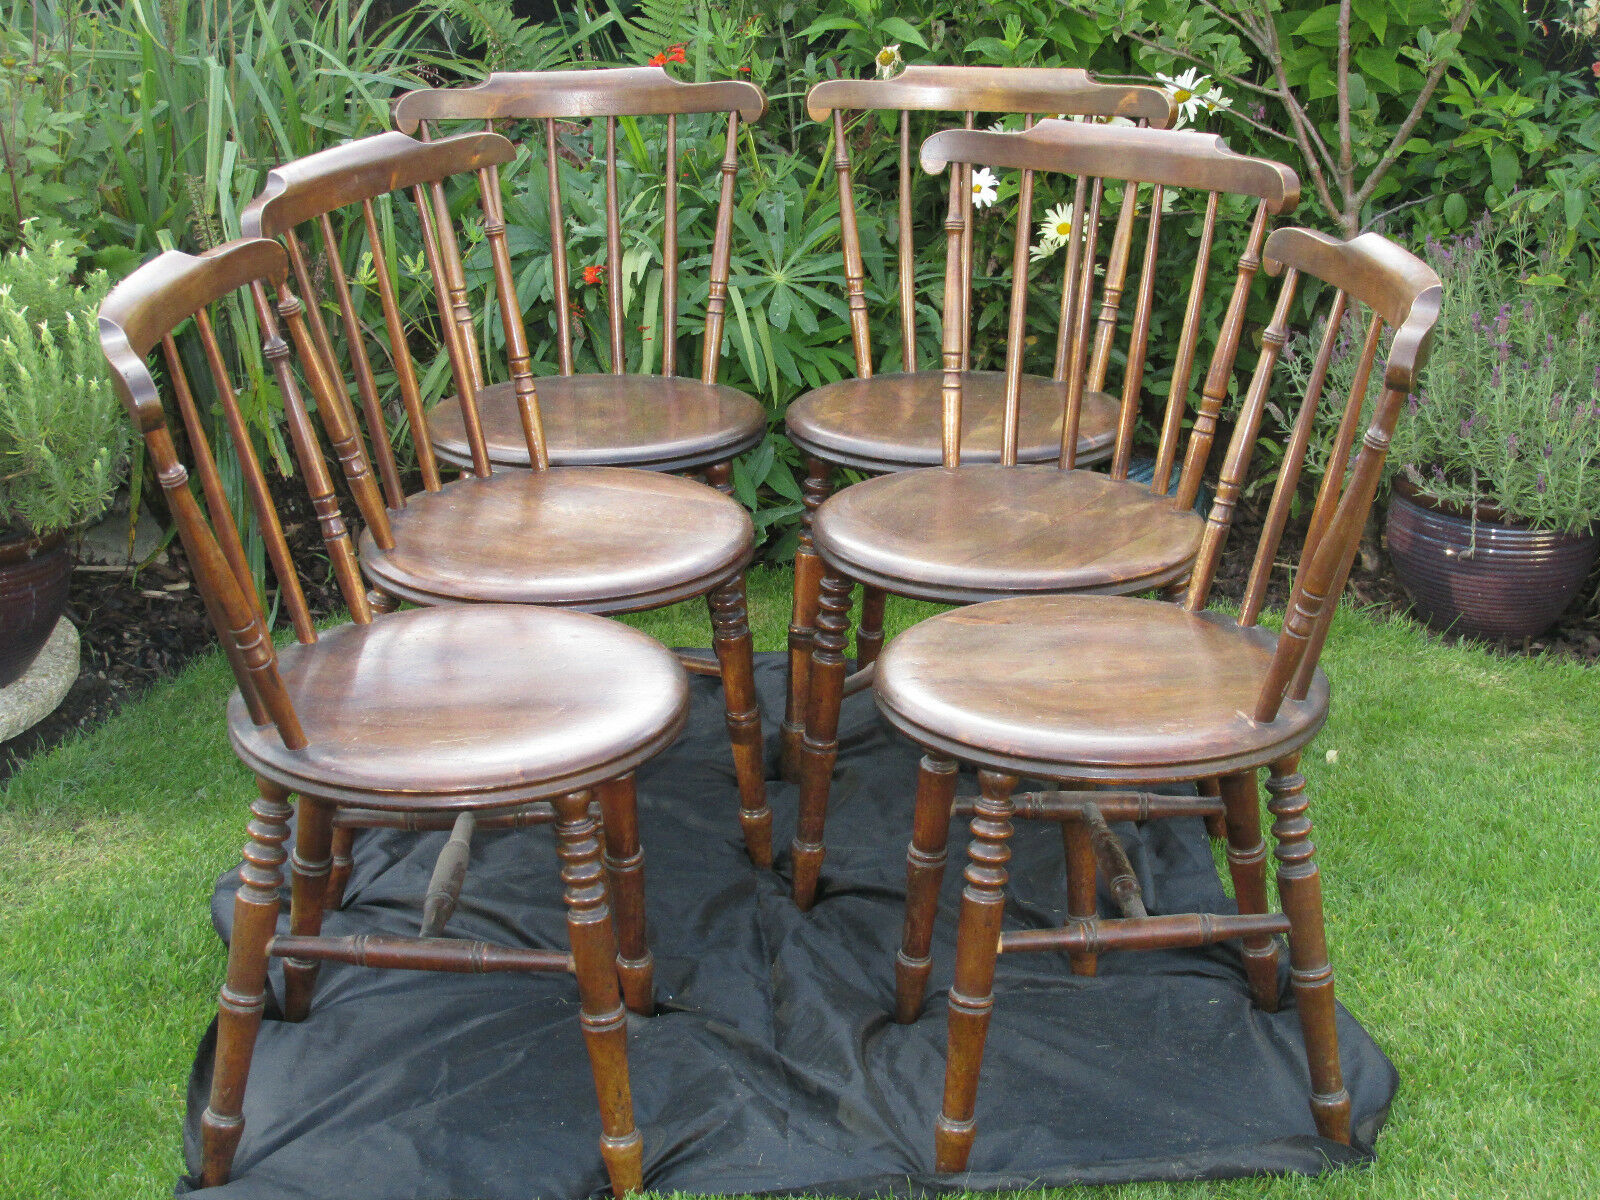 Antique Elm Spindle Back Penny Chairs by Ibex Late 19th C Furniture